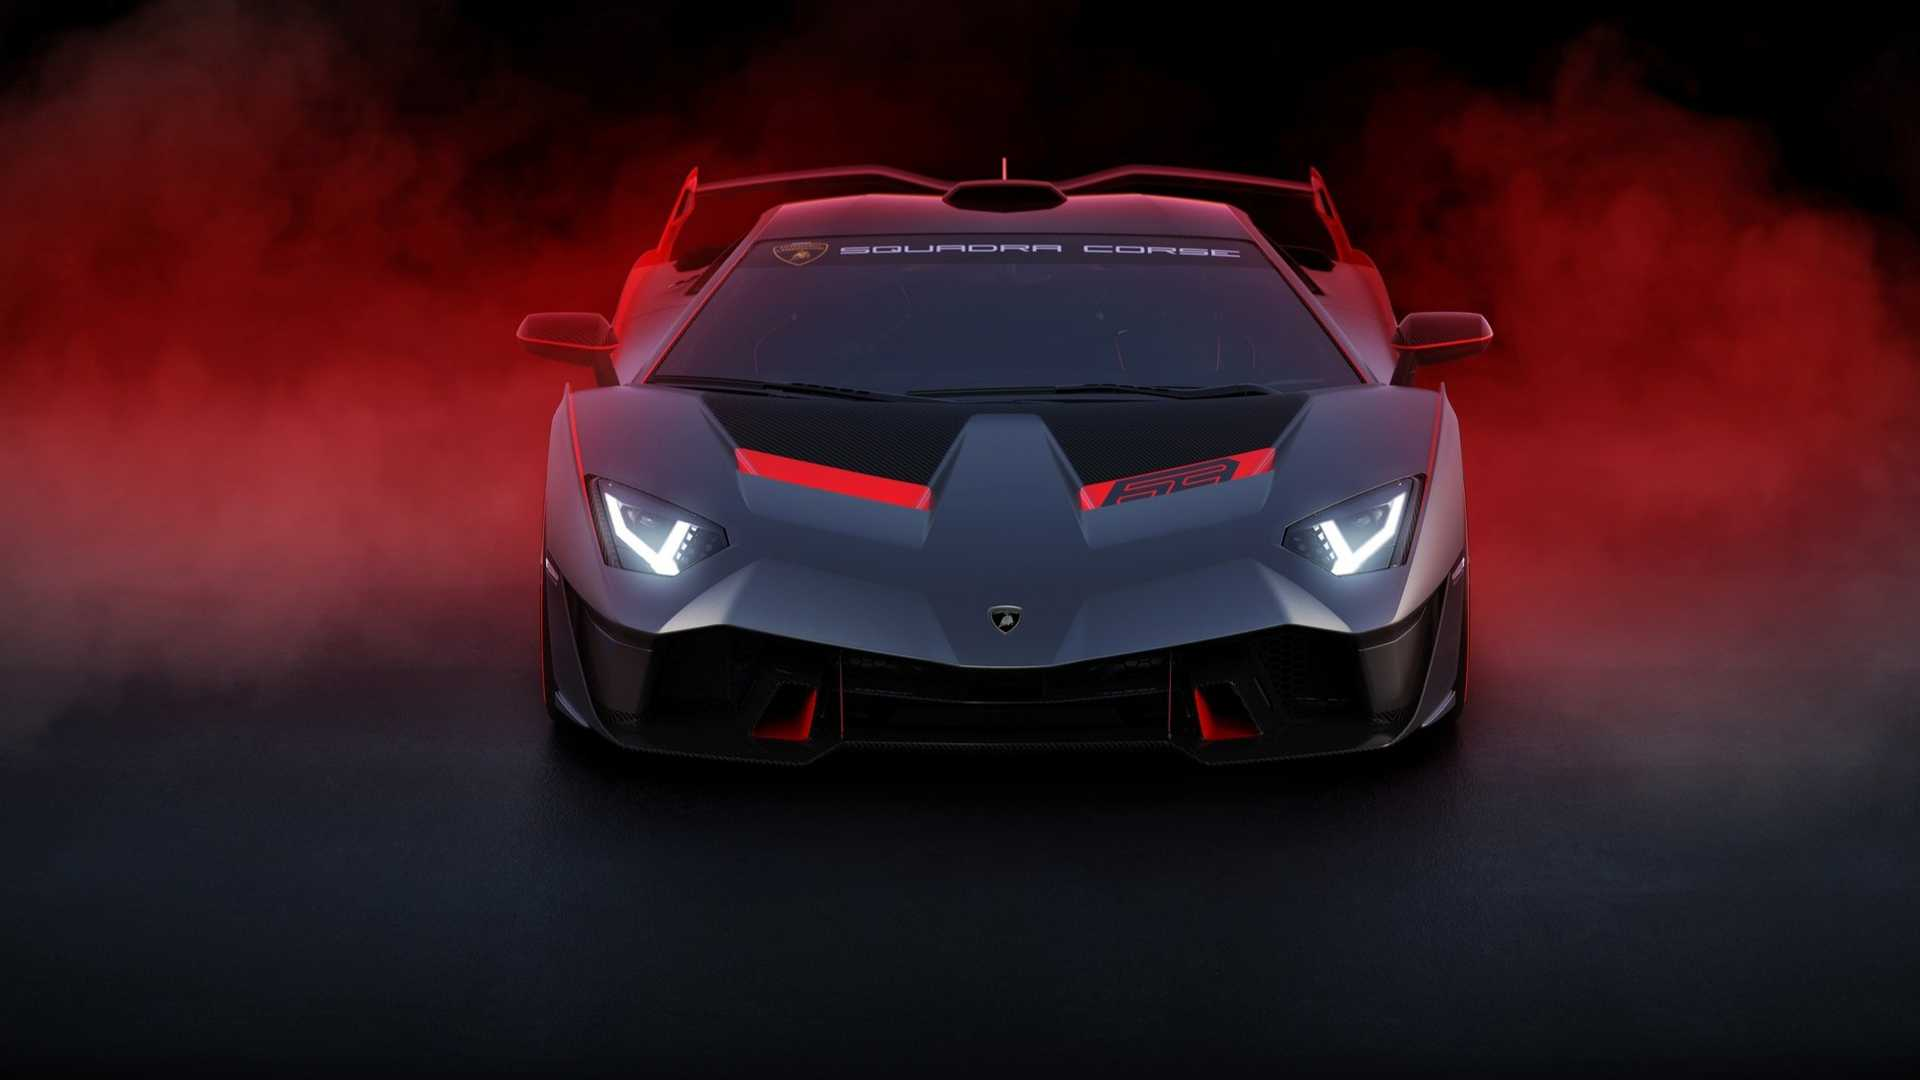 2019 Lamborghini SC18 Alston Front Wallpapers (2)